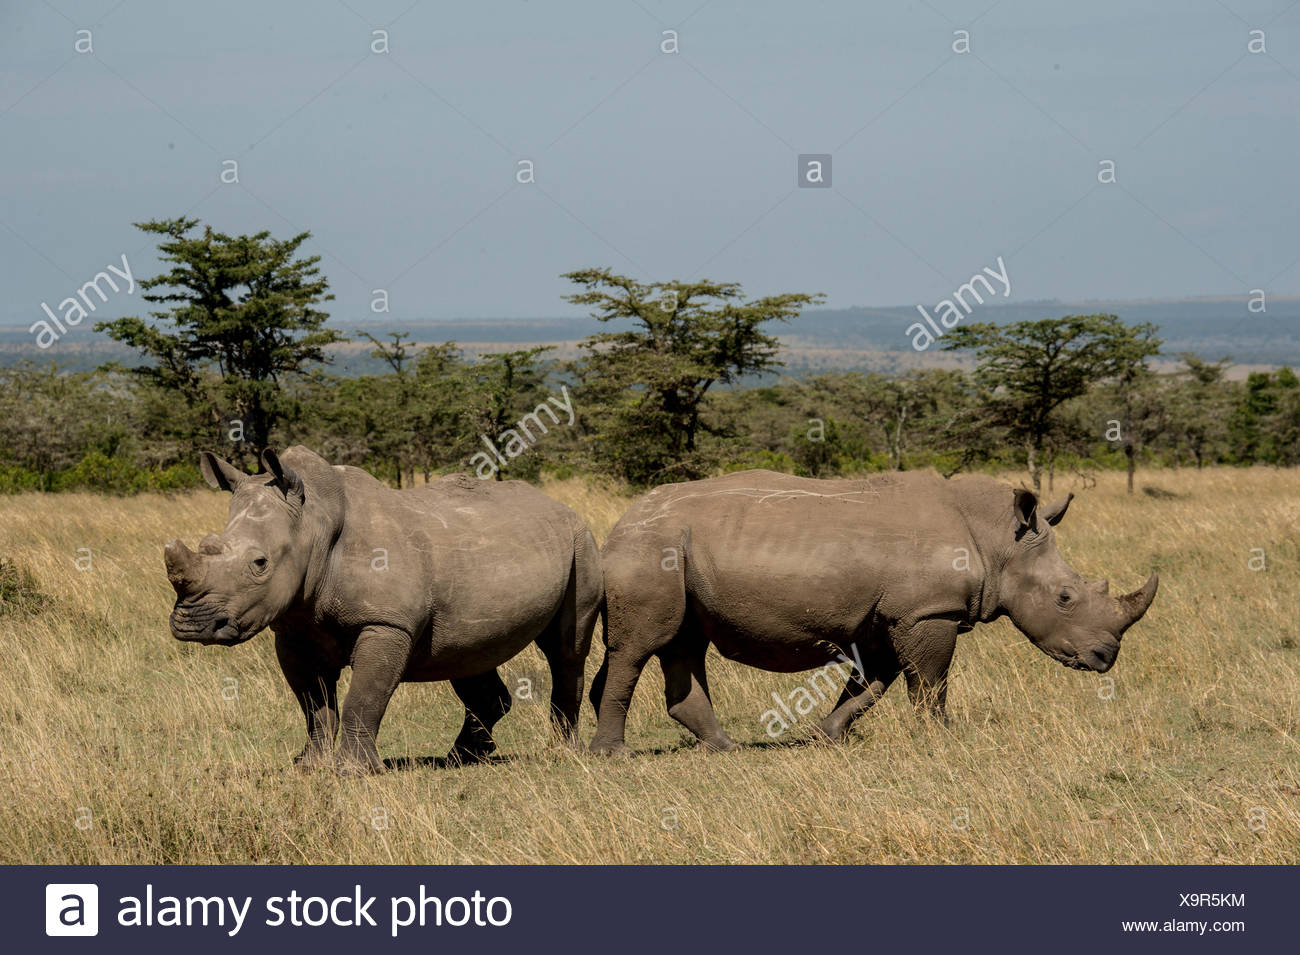 Fatu, with sawed off horn, socializes with a southern white rhino. - Stock Image